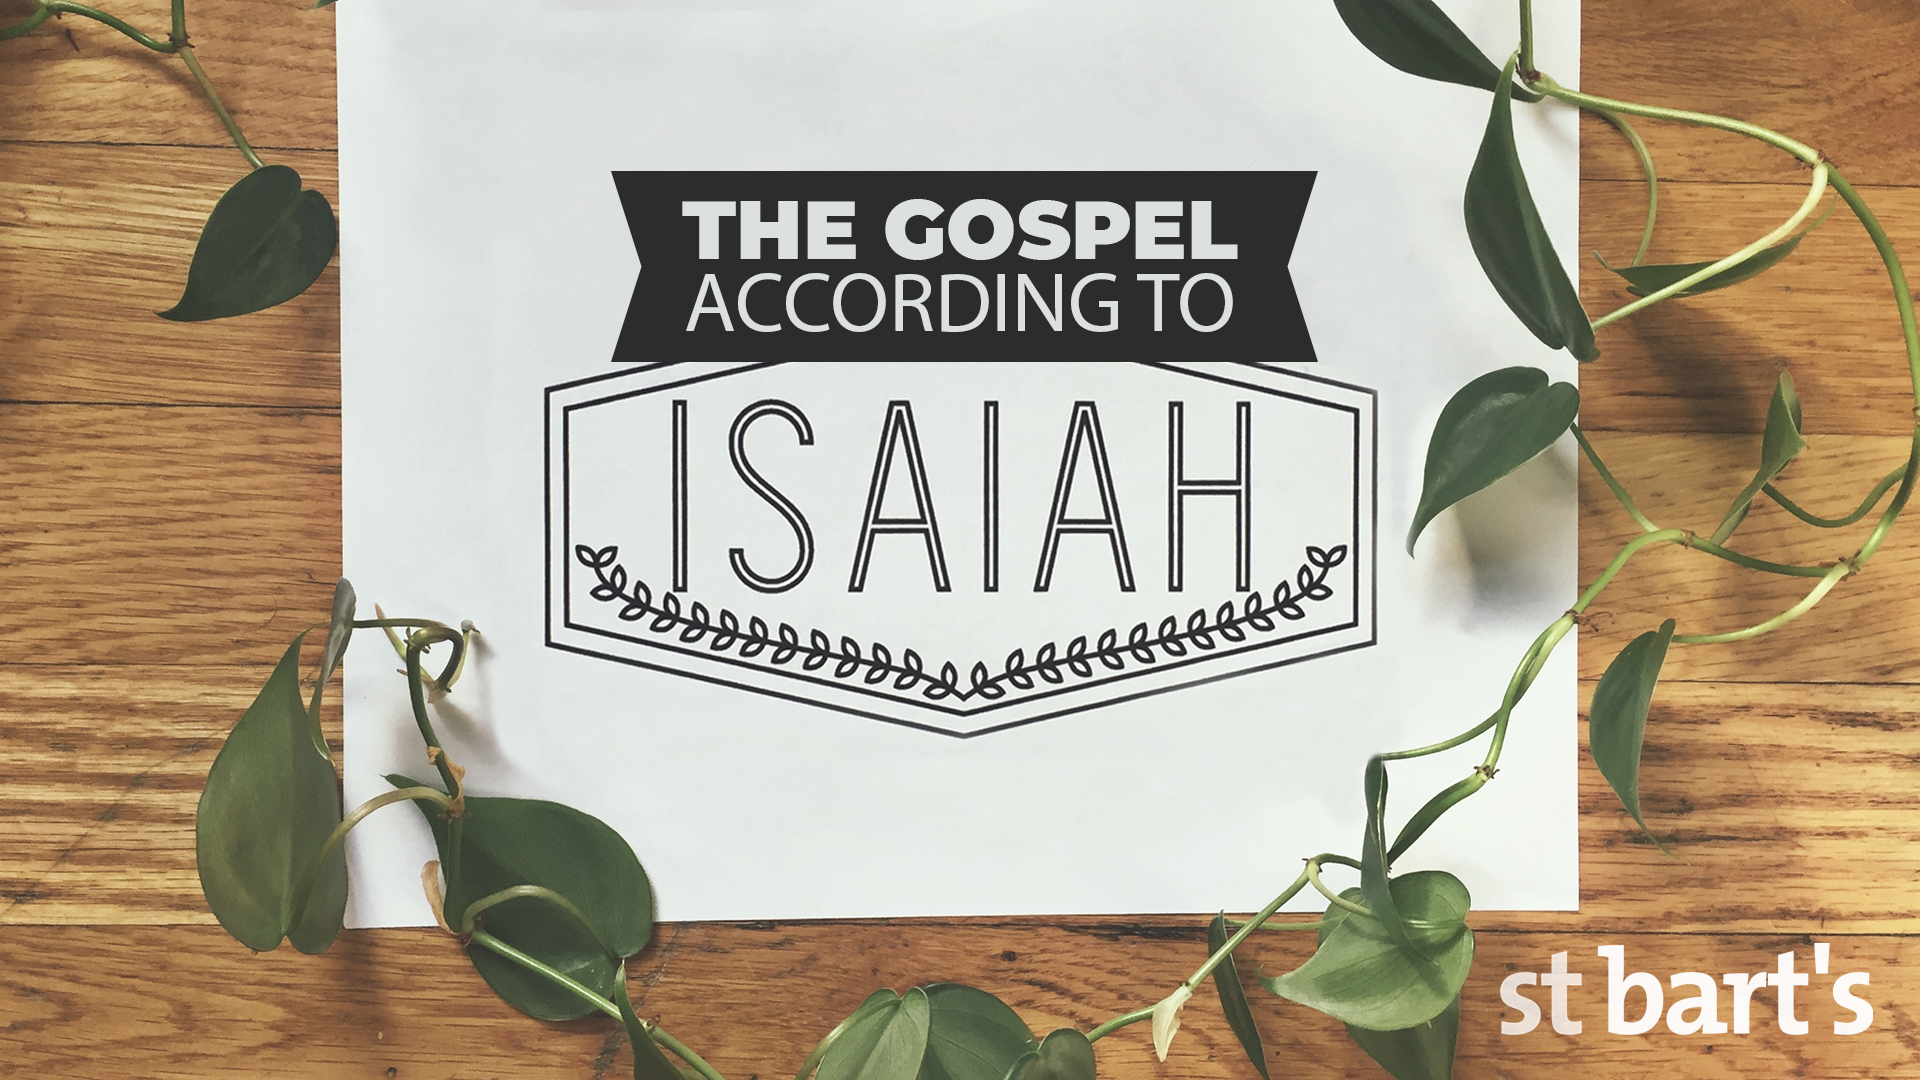 The Gospel According to Isaiah